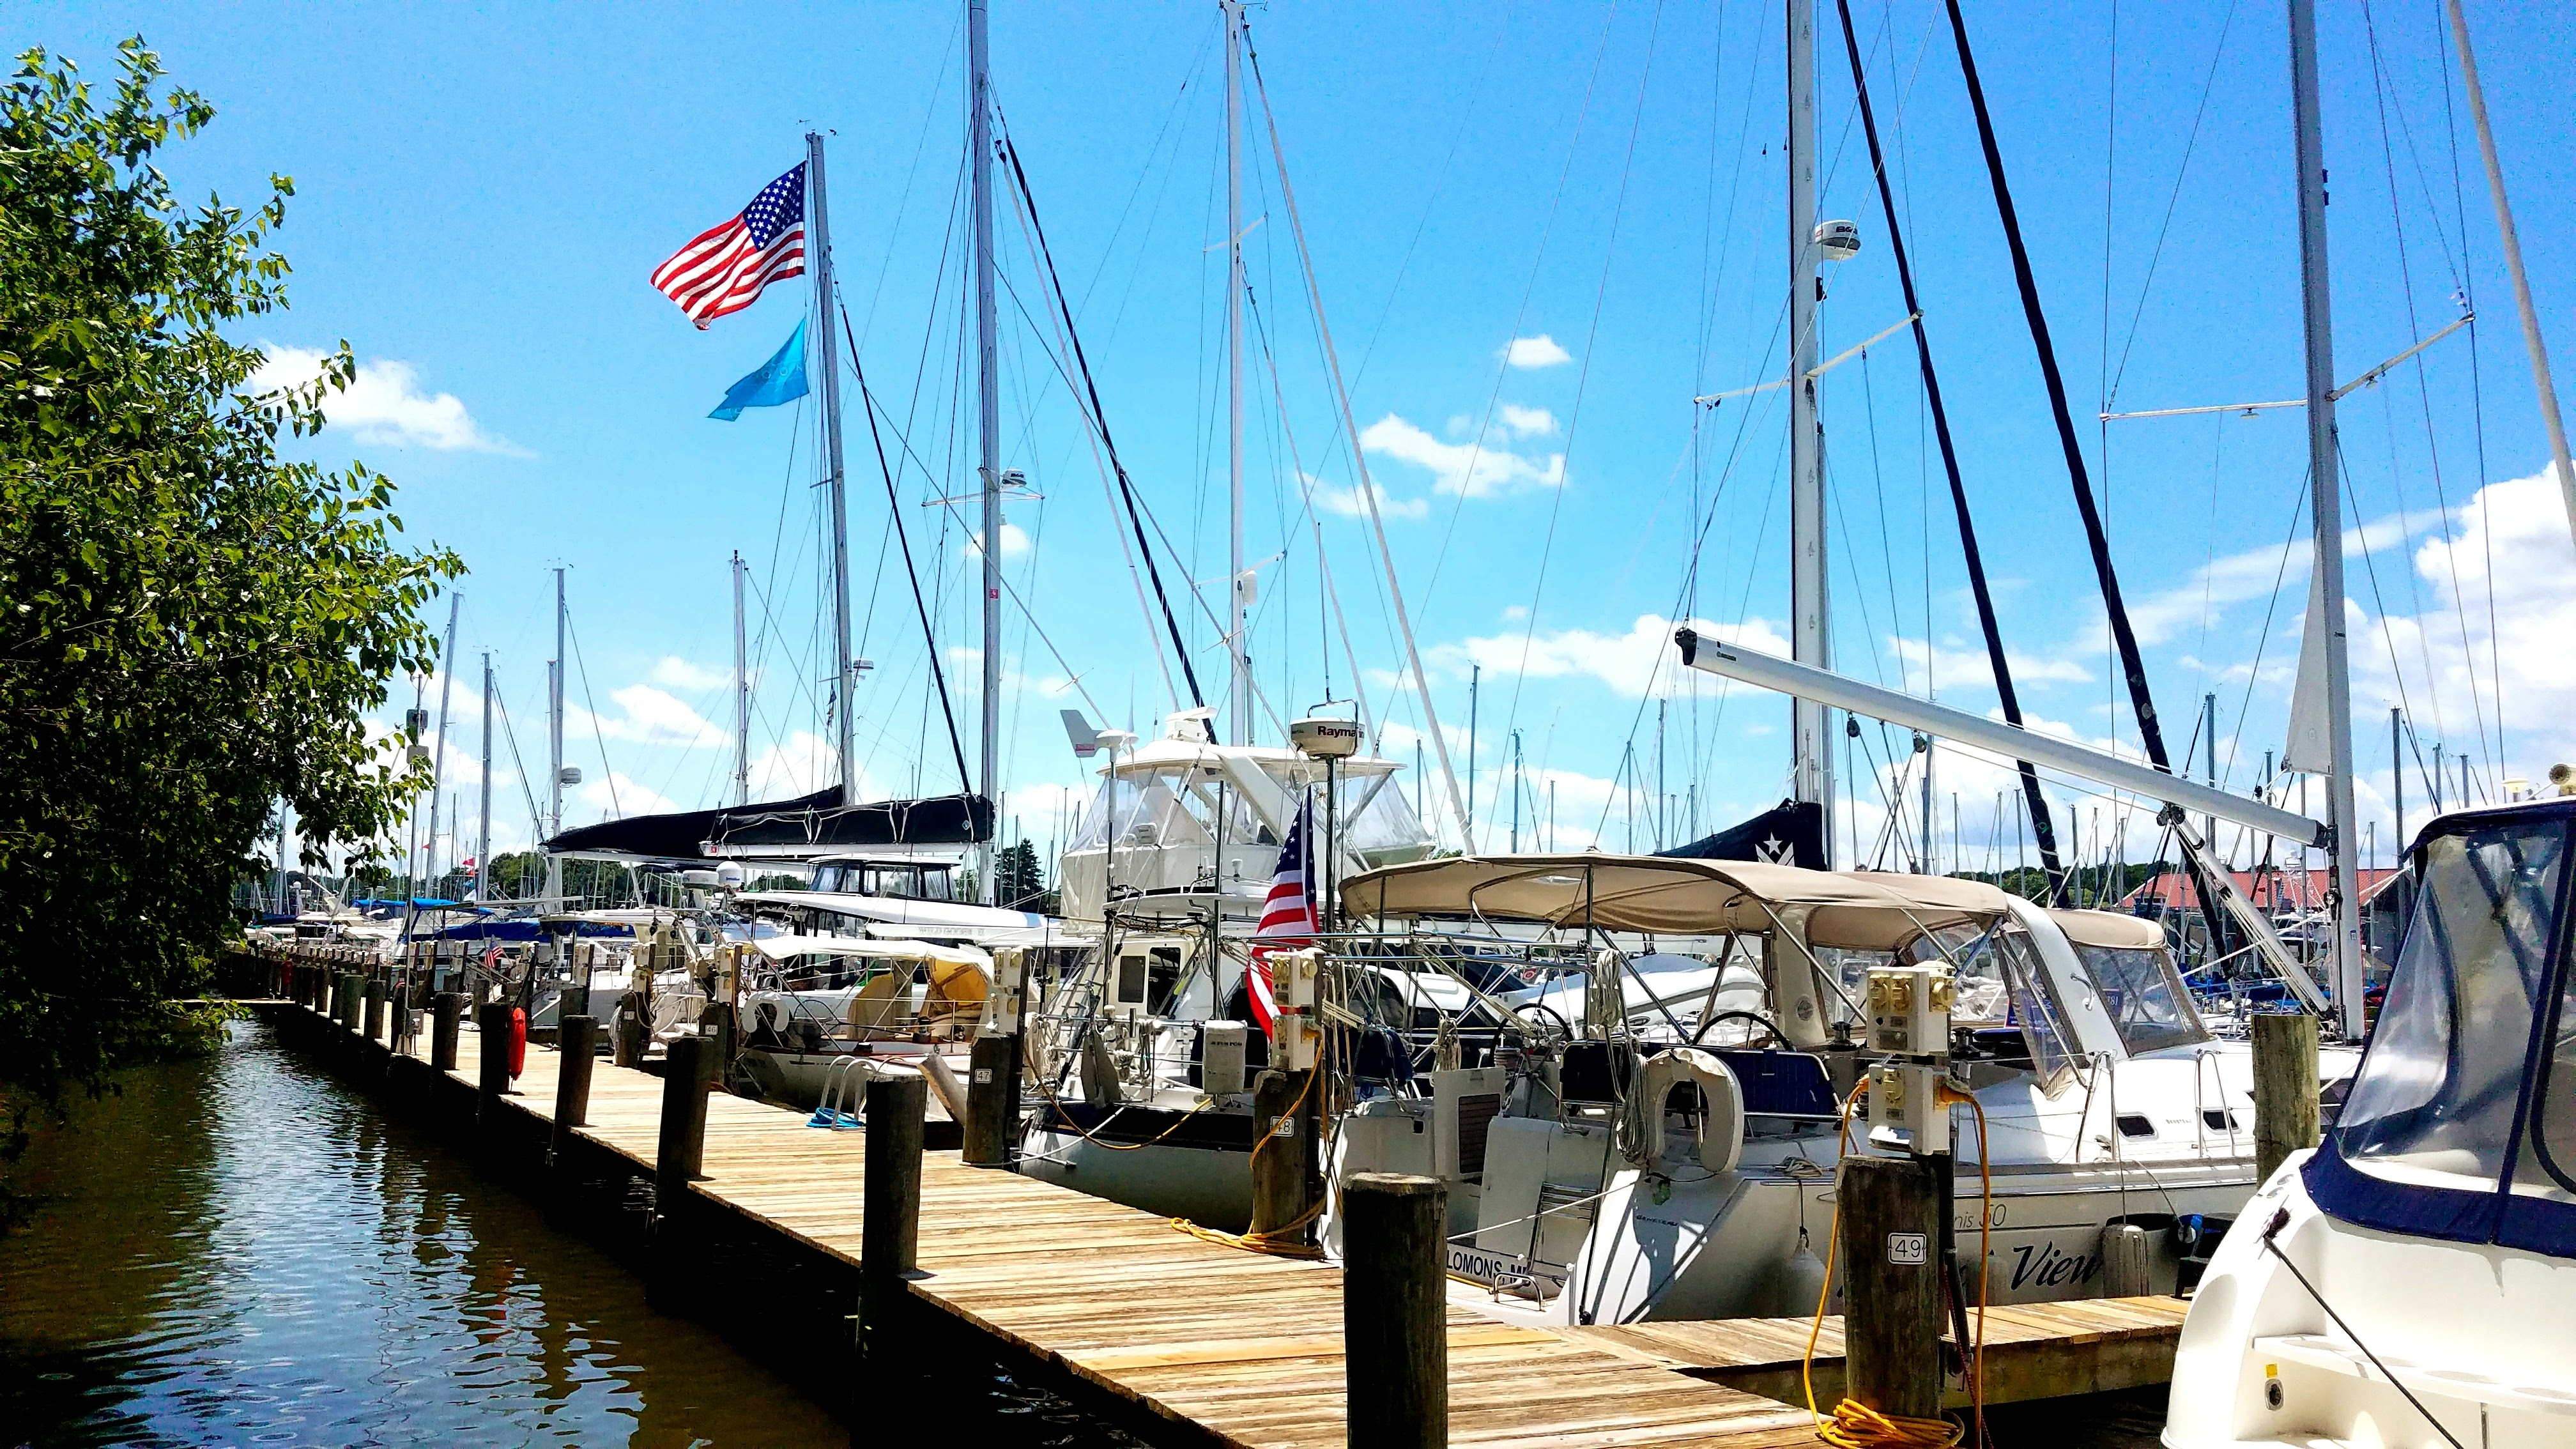 Shipwright Harbor Marina: A Boater's Guide to the Revamped Docks at